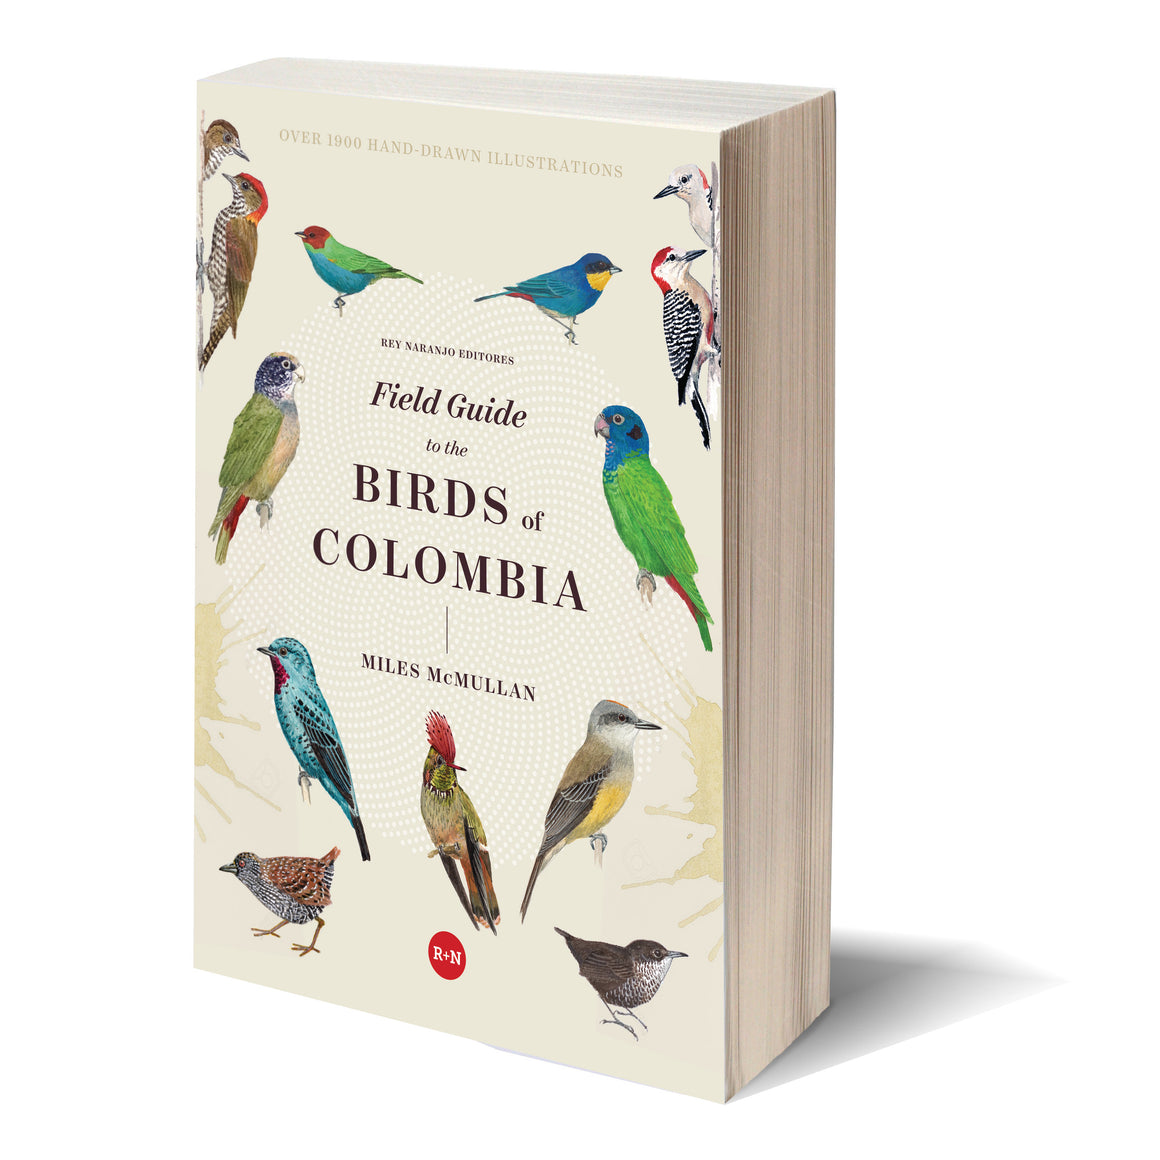 Field Guide to the Birds of Colombia, Third Edition.